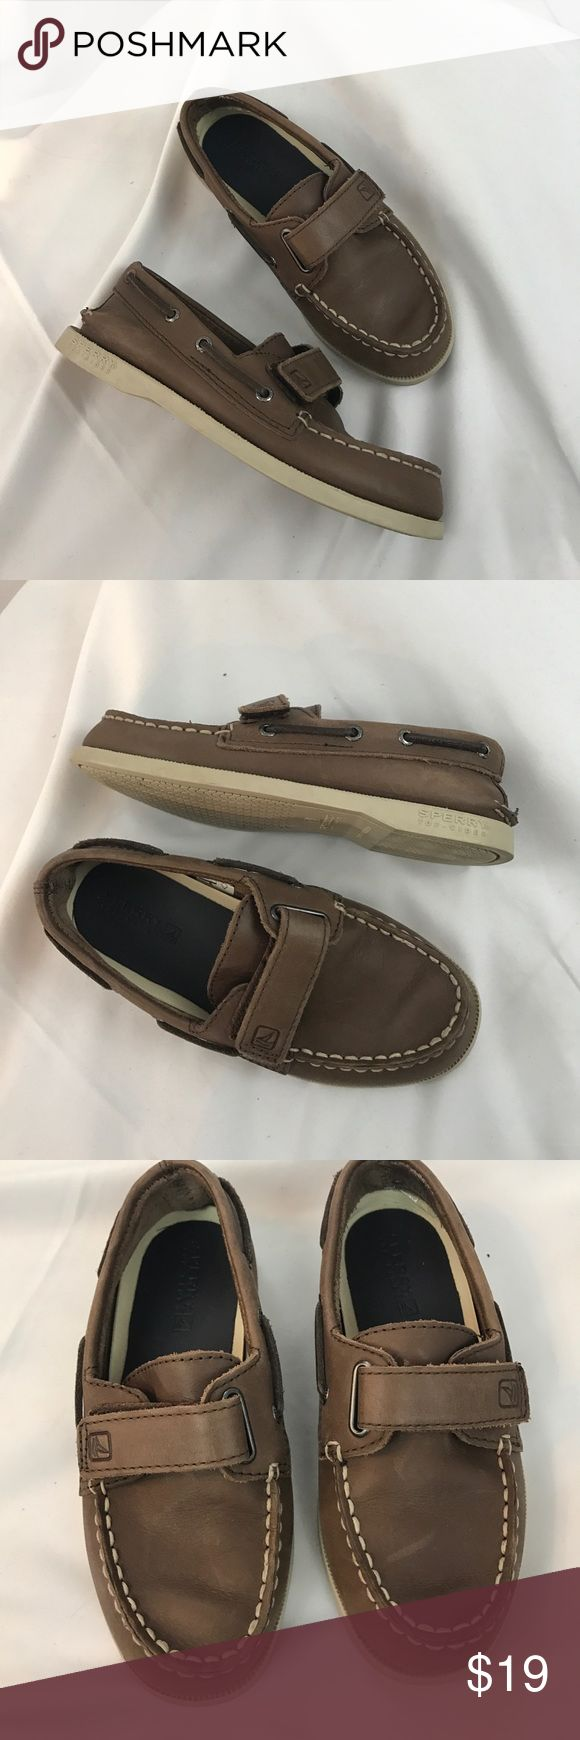 Sperry Top-Sider boys sz12.5 leather boat shoes Excellent used condition Sperry Top-Sider boys sz12.5 leather boat shoes...Velcro closure...some light marks but nothing blatant...overall a great little pair of shoes... Sperry Top-Sider Shoes